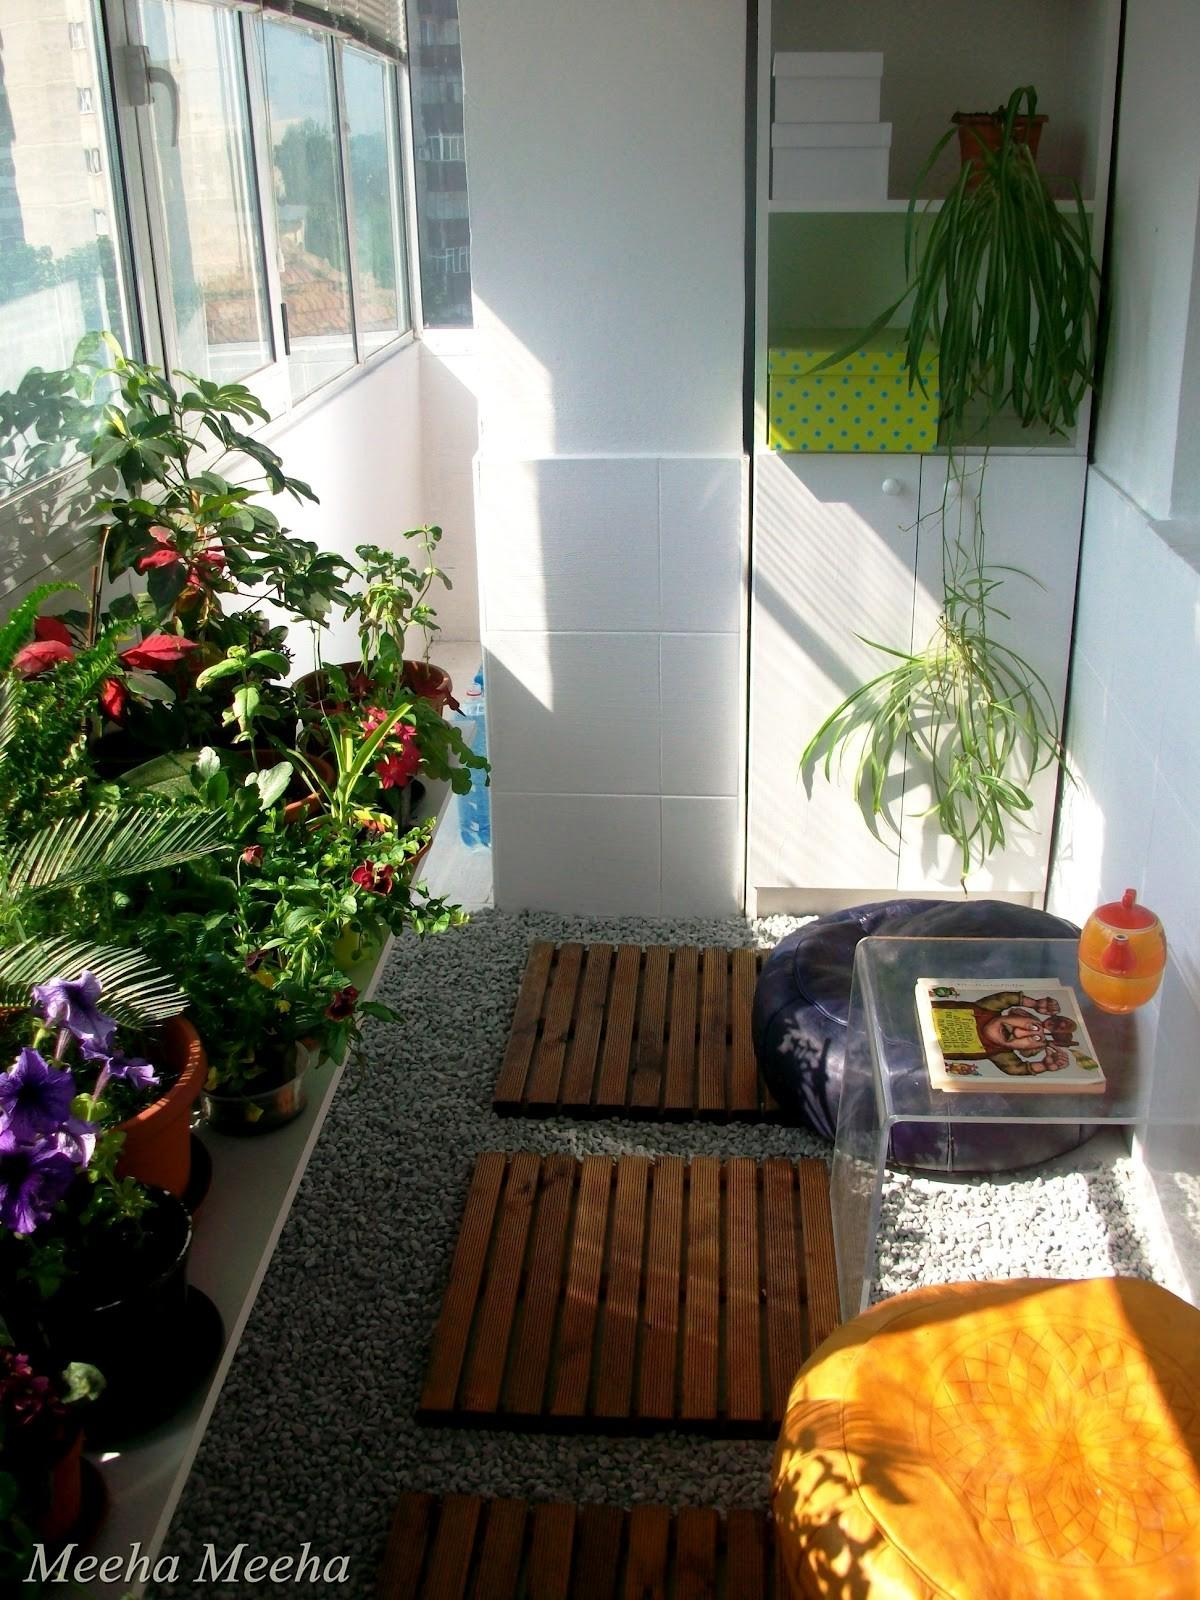 Meeha Before After Small Balcony